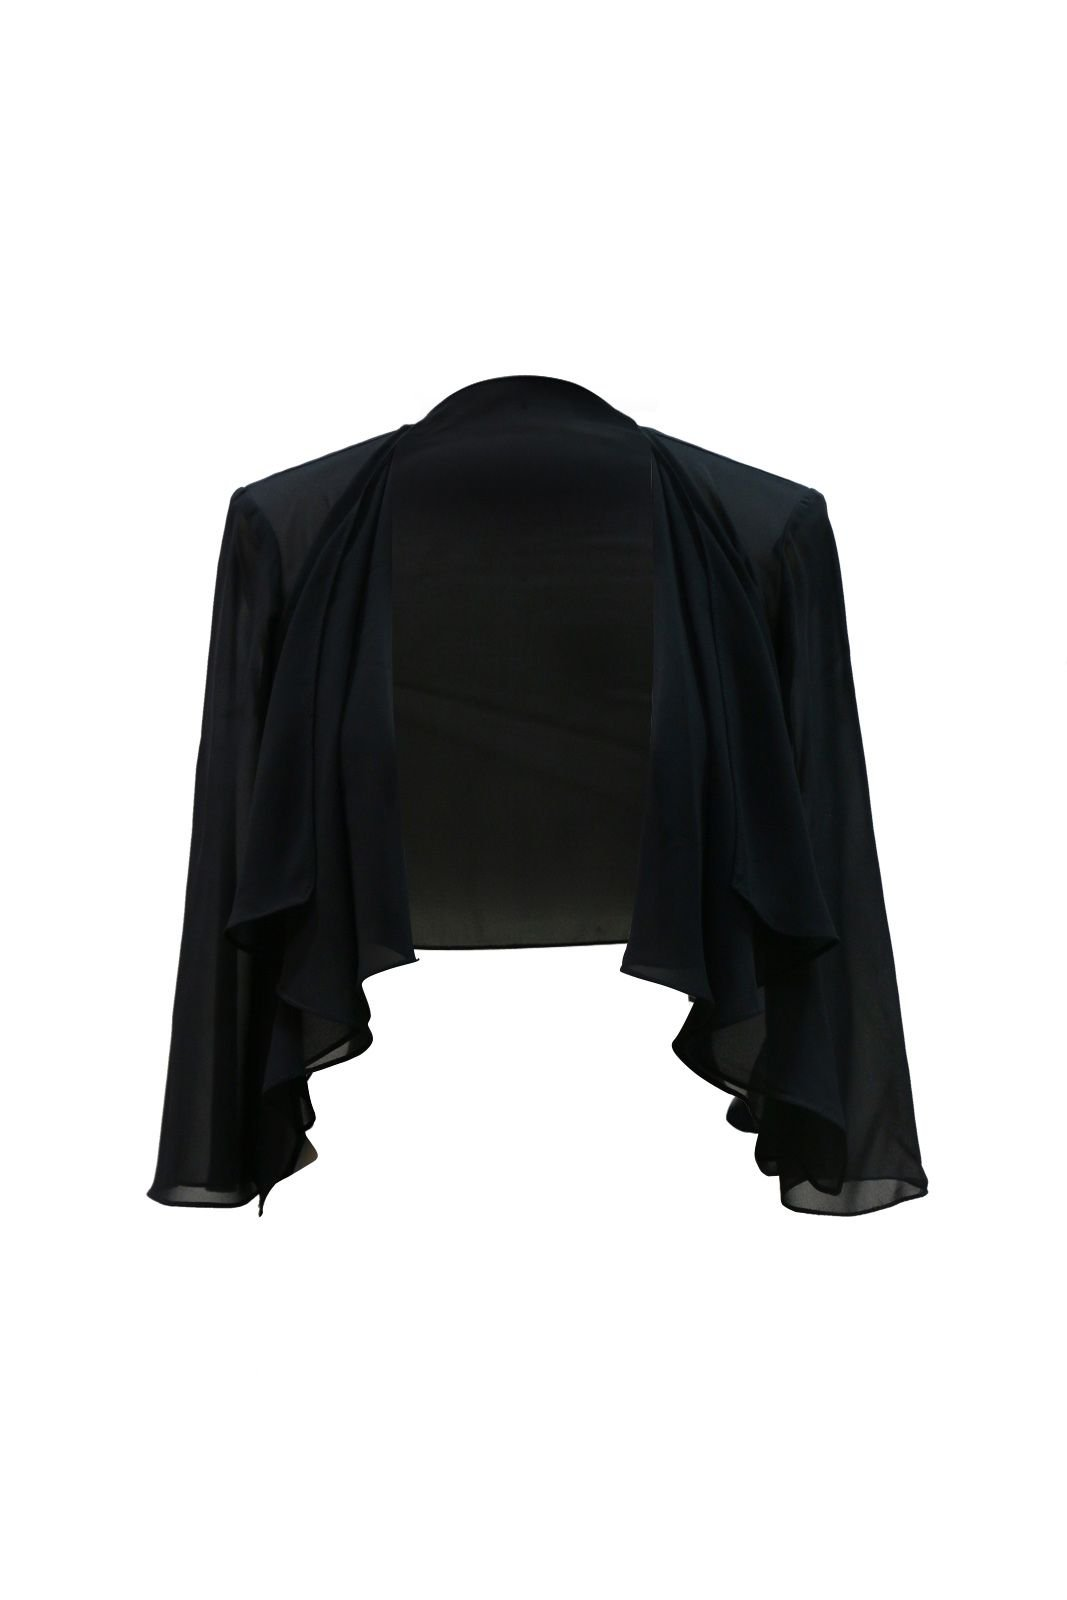 Chic Queen Women's Sheer Chiffon Bolero Shrug Jacket Cardigan Long Sleeve(XXL/Black)